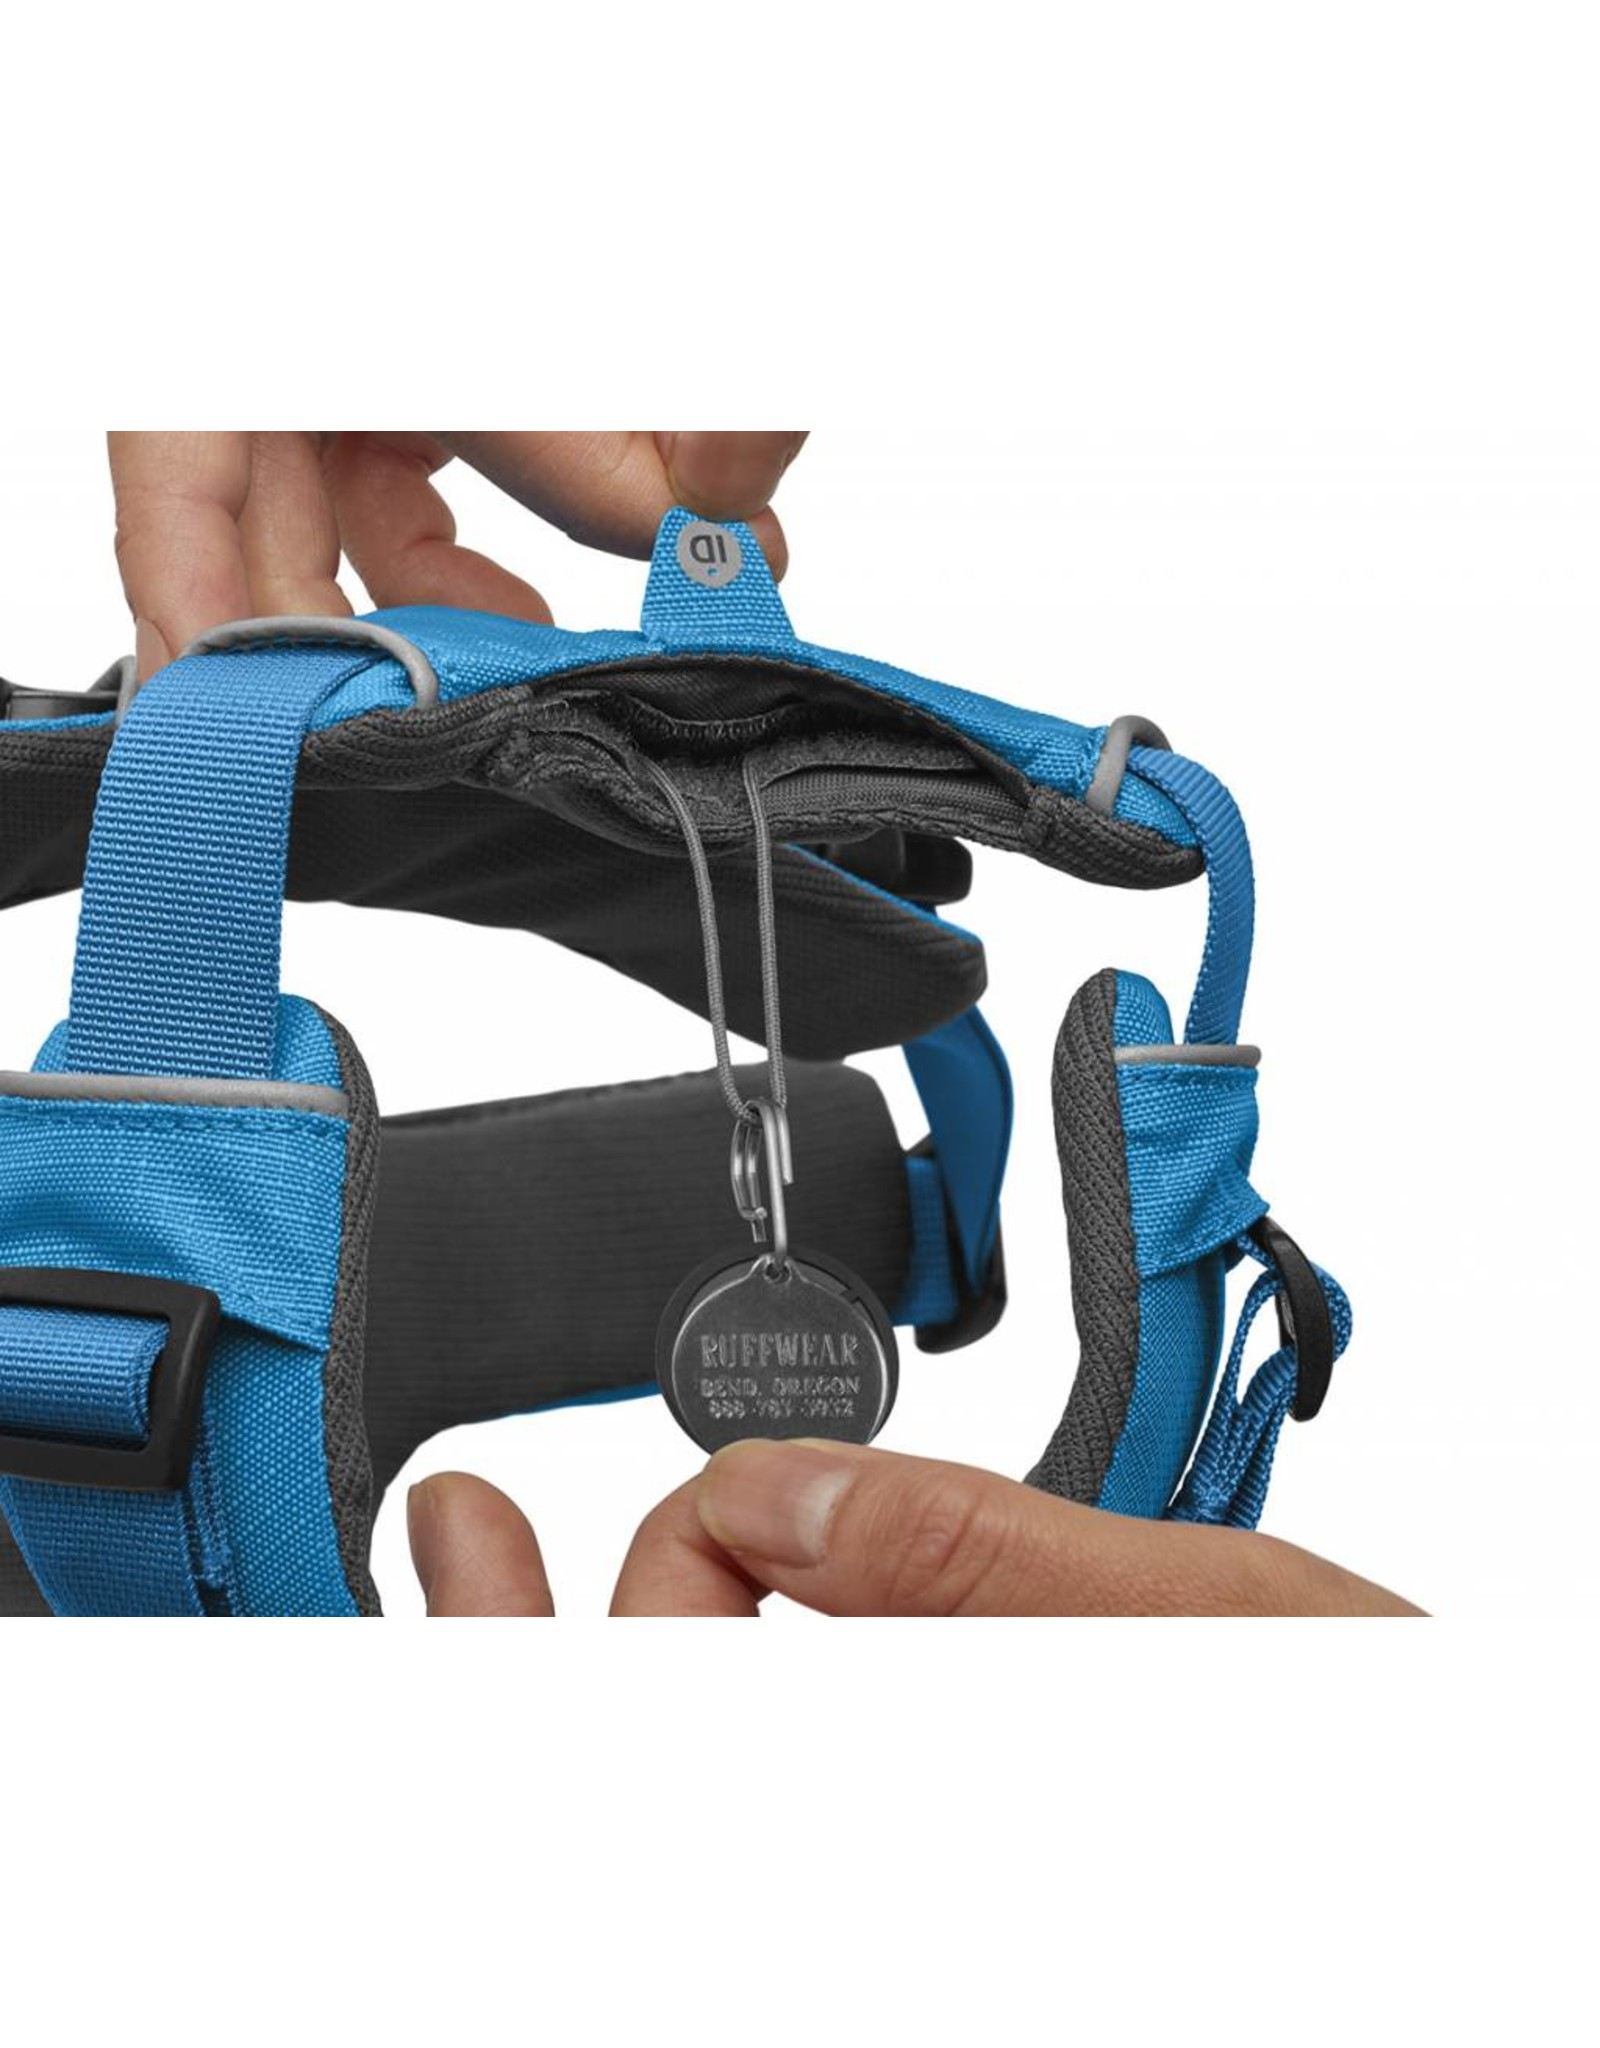 Ruffwear Front Range™ Harness (old colors)